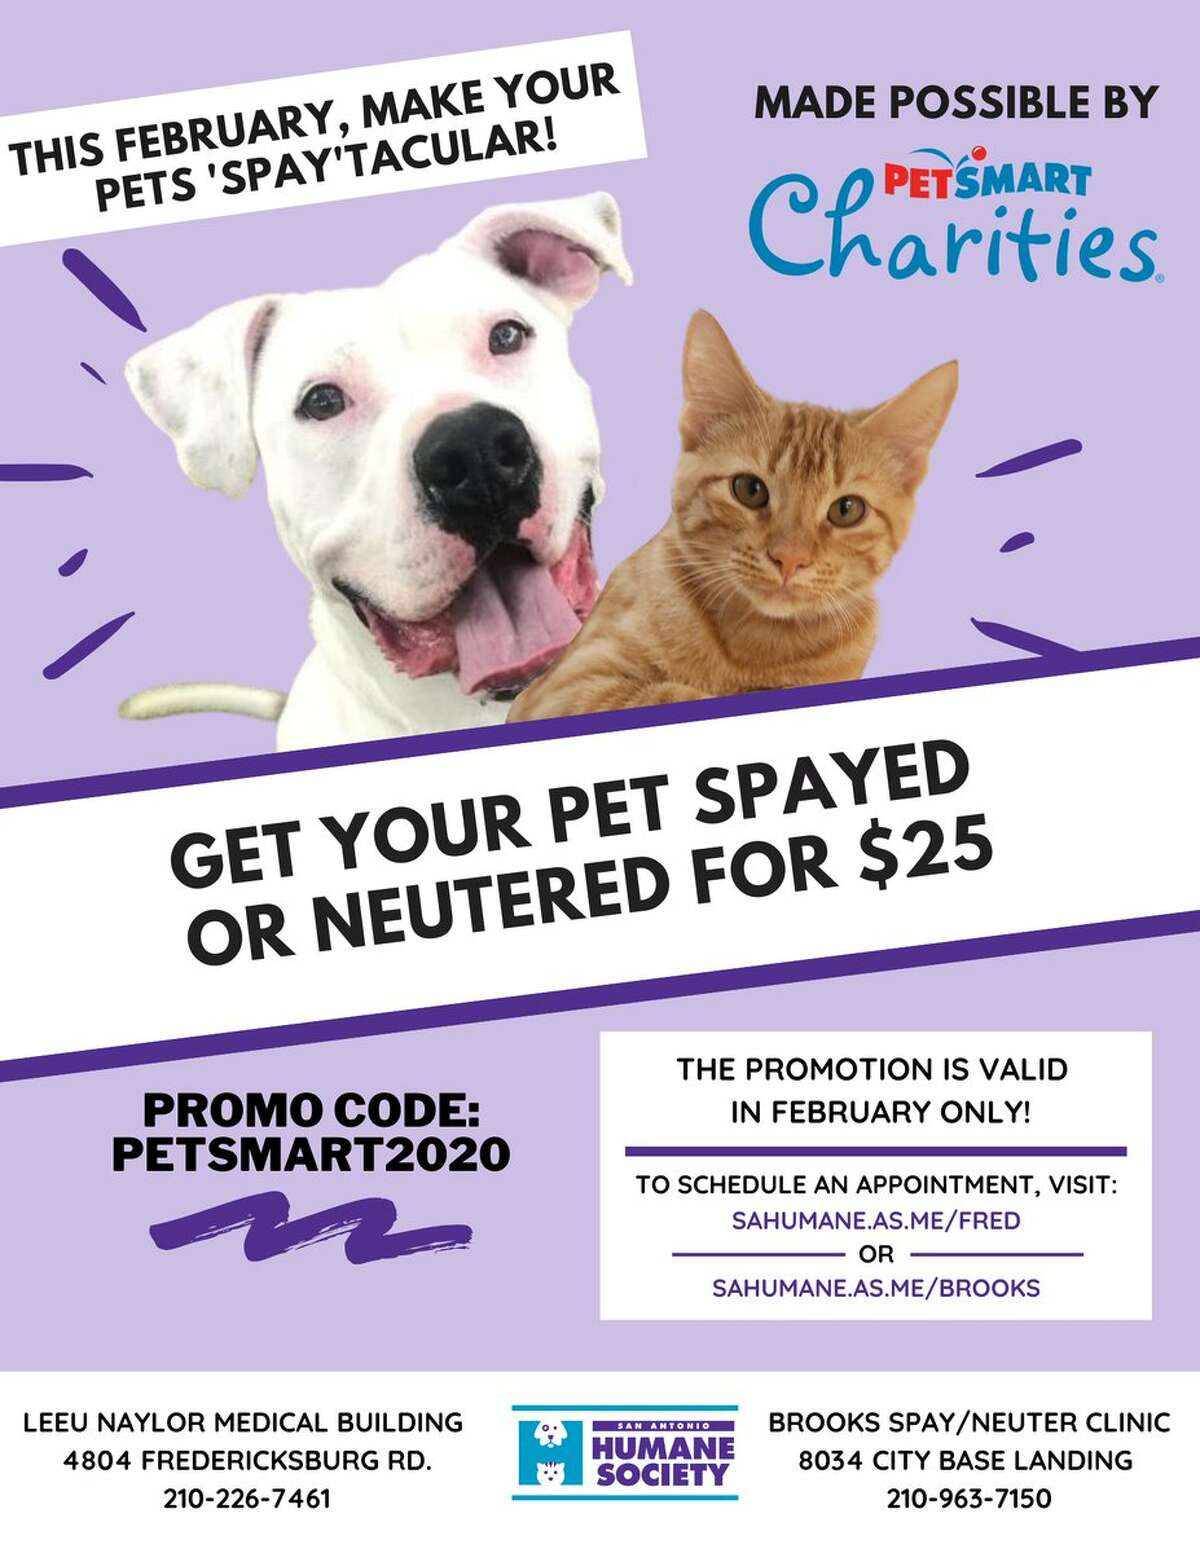 Spay and neuter your pets for only $25 during the month of February.